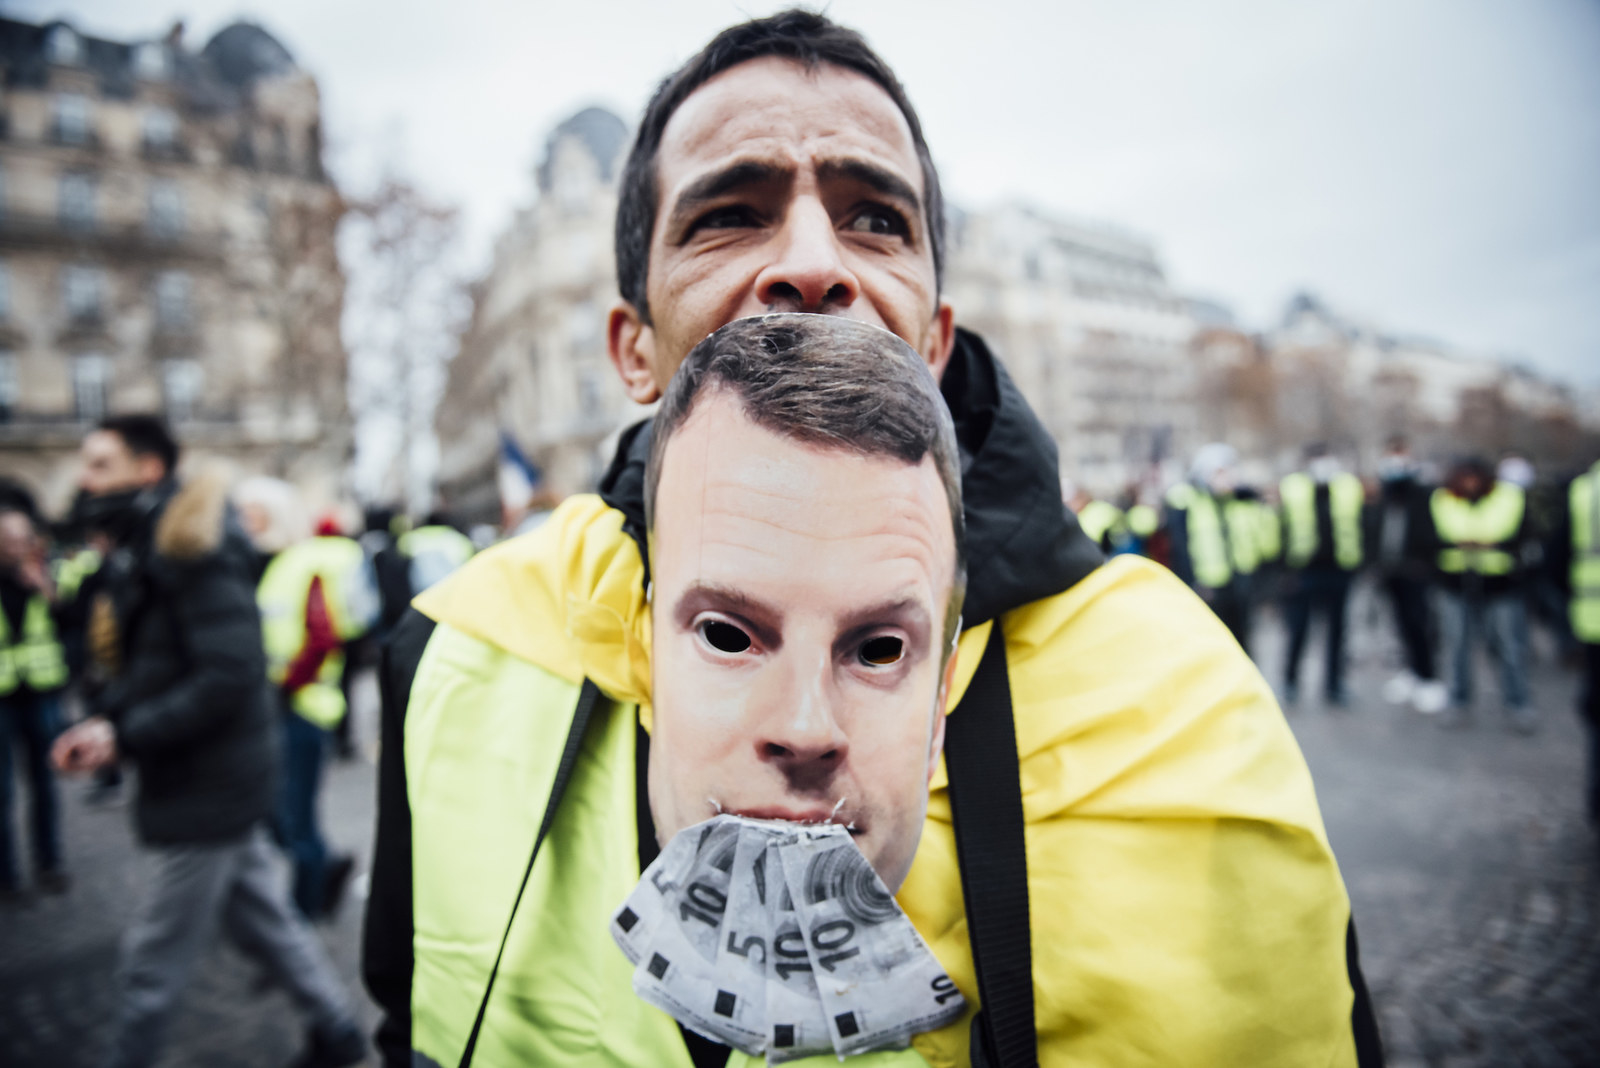 A man wears a mask of French President Emmanuel Macron during the Yellow Vest demonstration on Dec. 8, 2018.